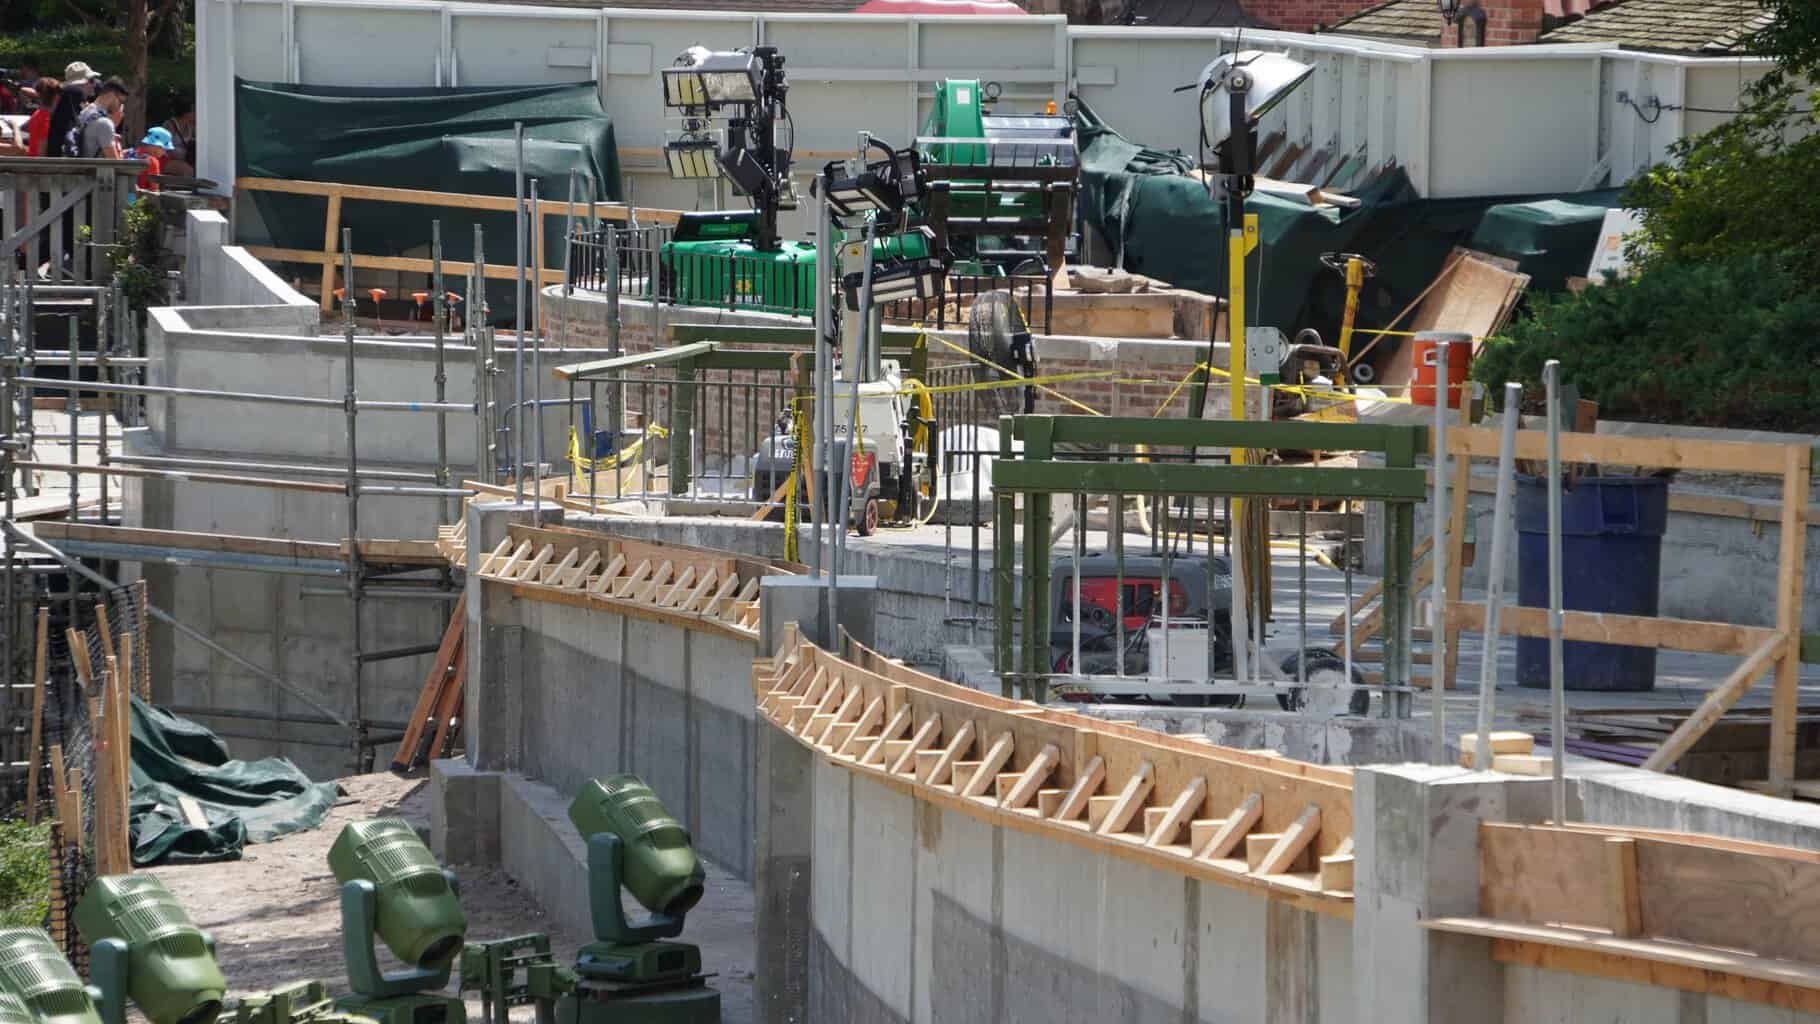 machines used to widen pathway near Cinderella Castle in magic Kingdom